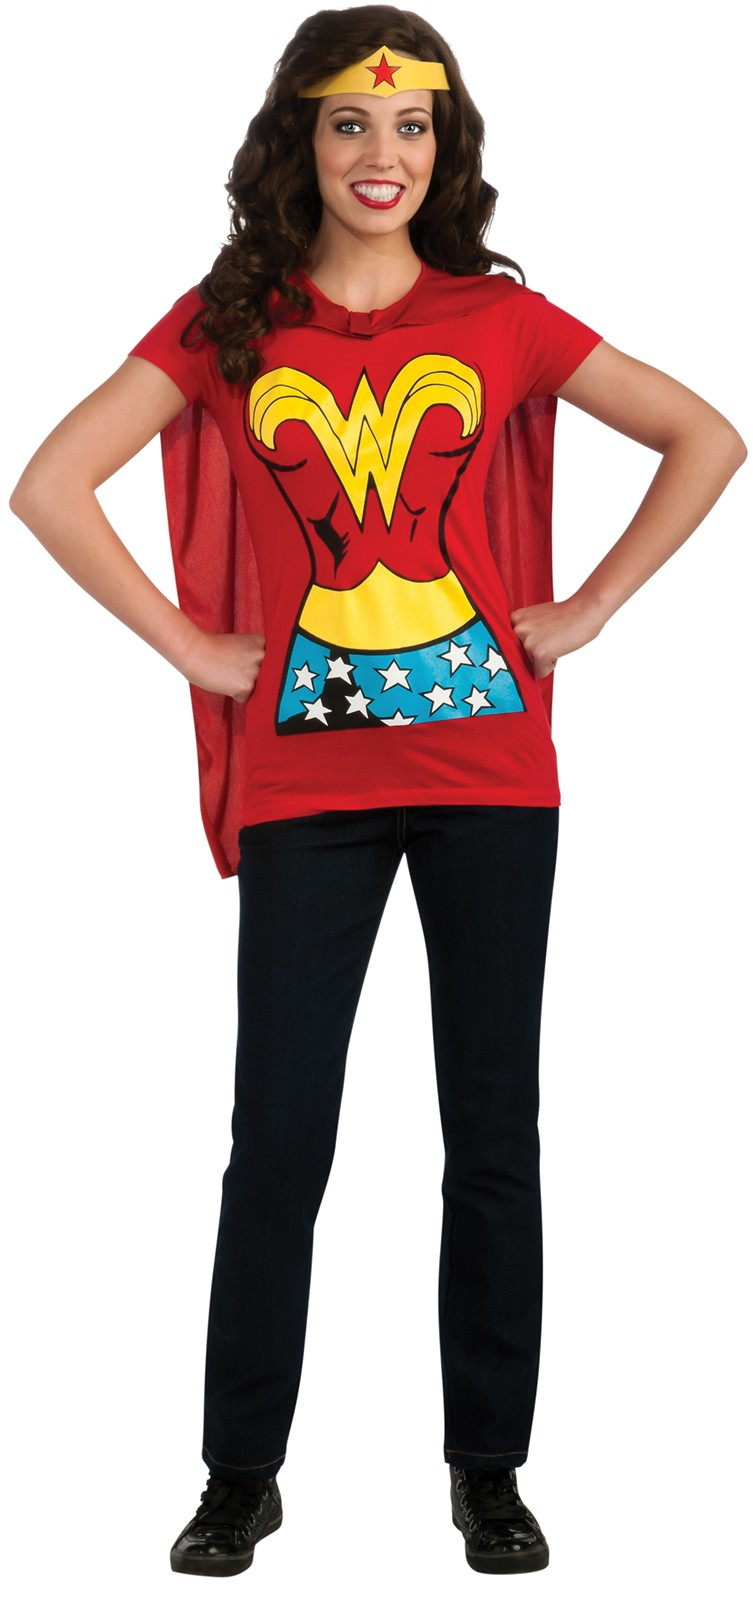 Wonder woman t shirt adult women 39 s costume kit costumes for Wonder woman book shirt